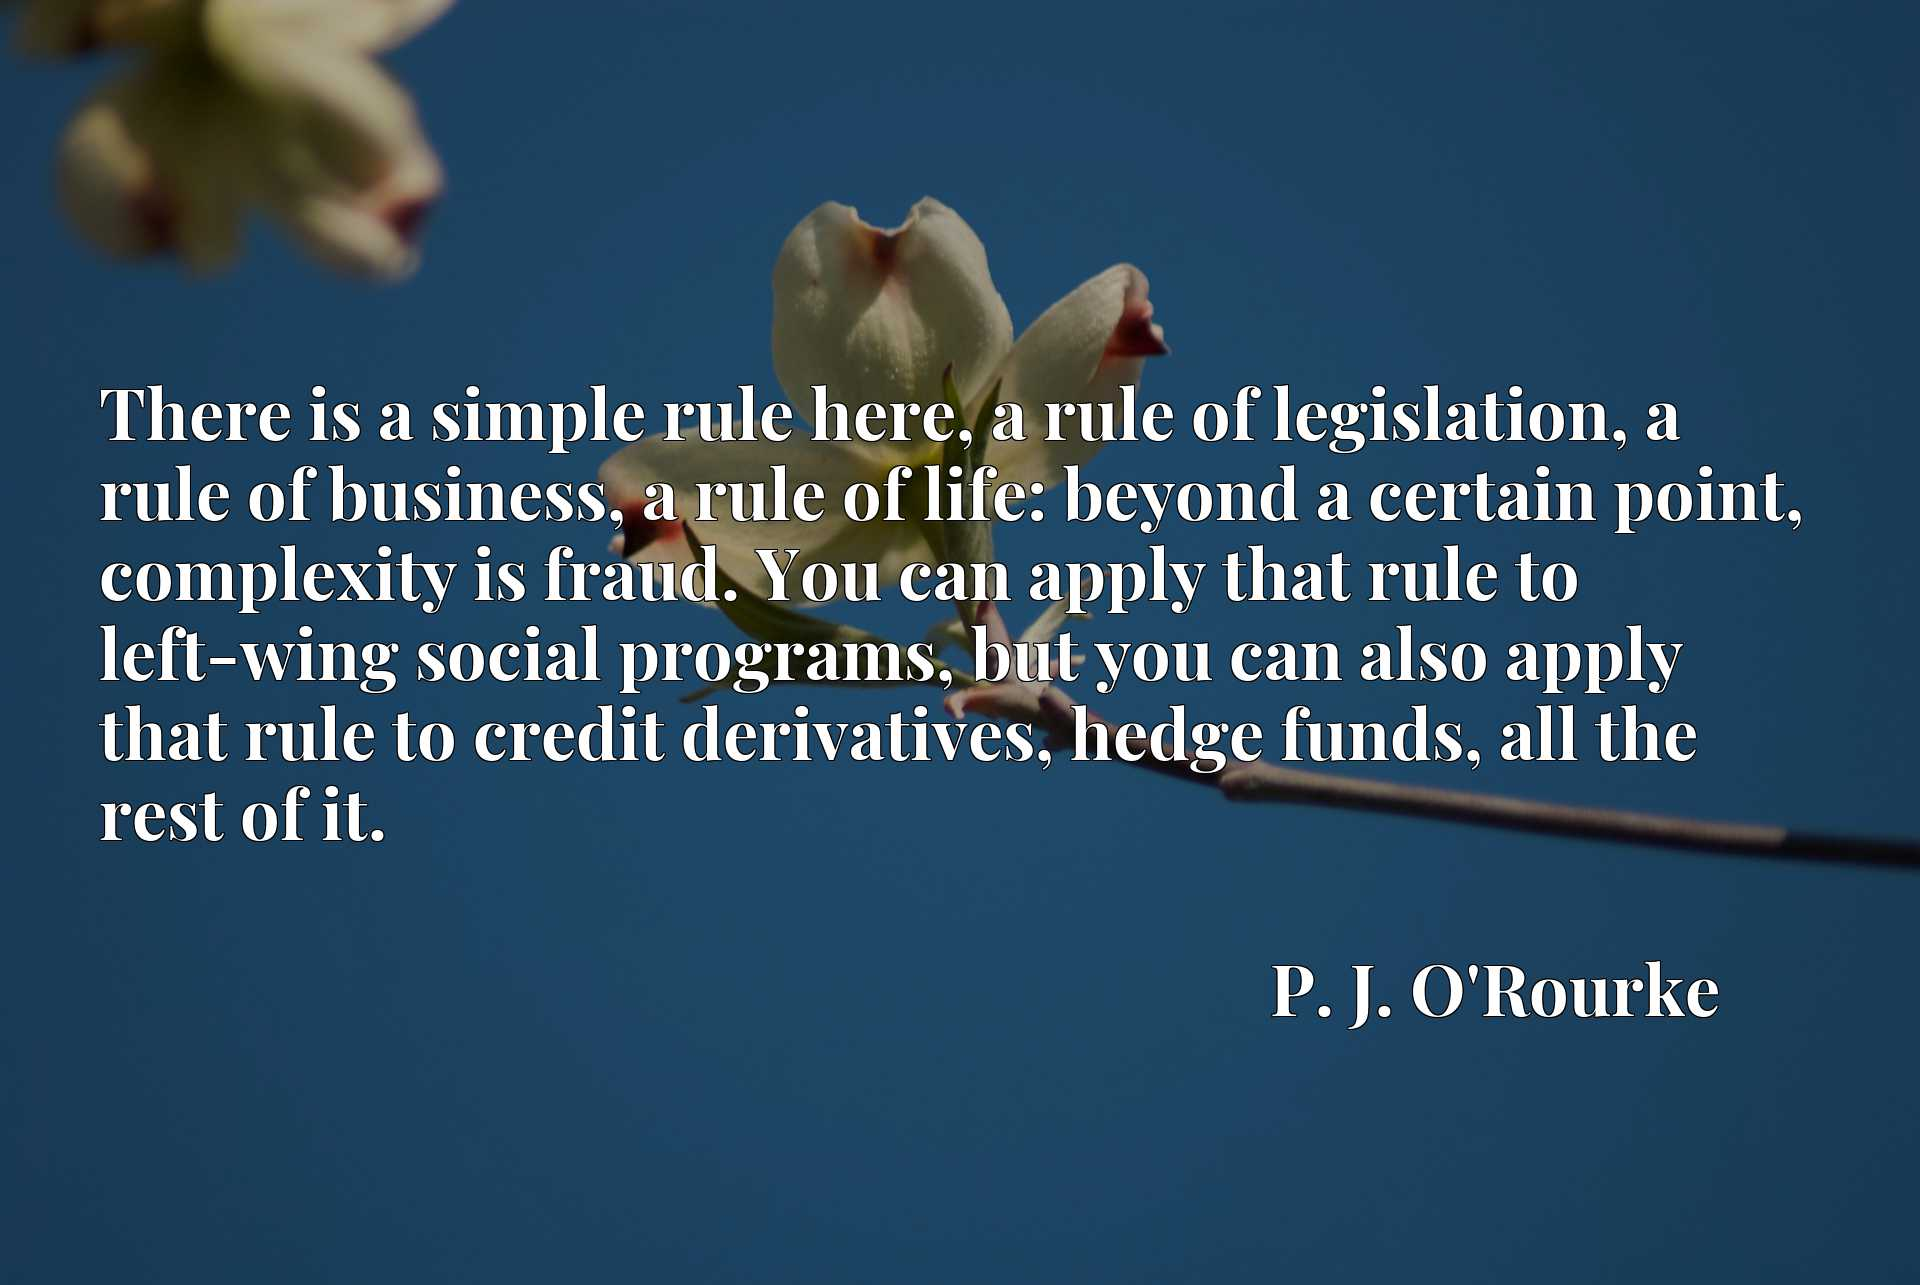 There is a simple rule here, a rule of legislation, a rule of business, a rule of life: beyond a certain point, complexity is fraud. You can apply that rule to left-wing social programs, but you can also apply that rule to credit derivatives, hedge funds, all the rest of it.